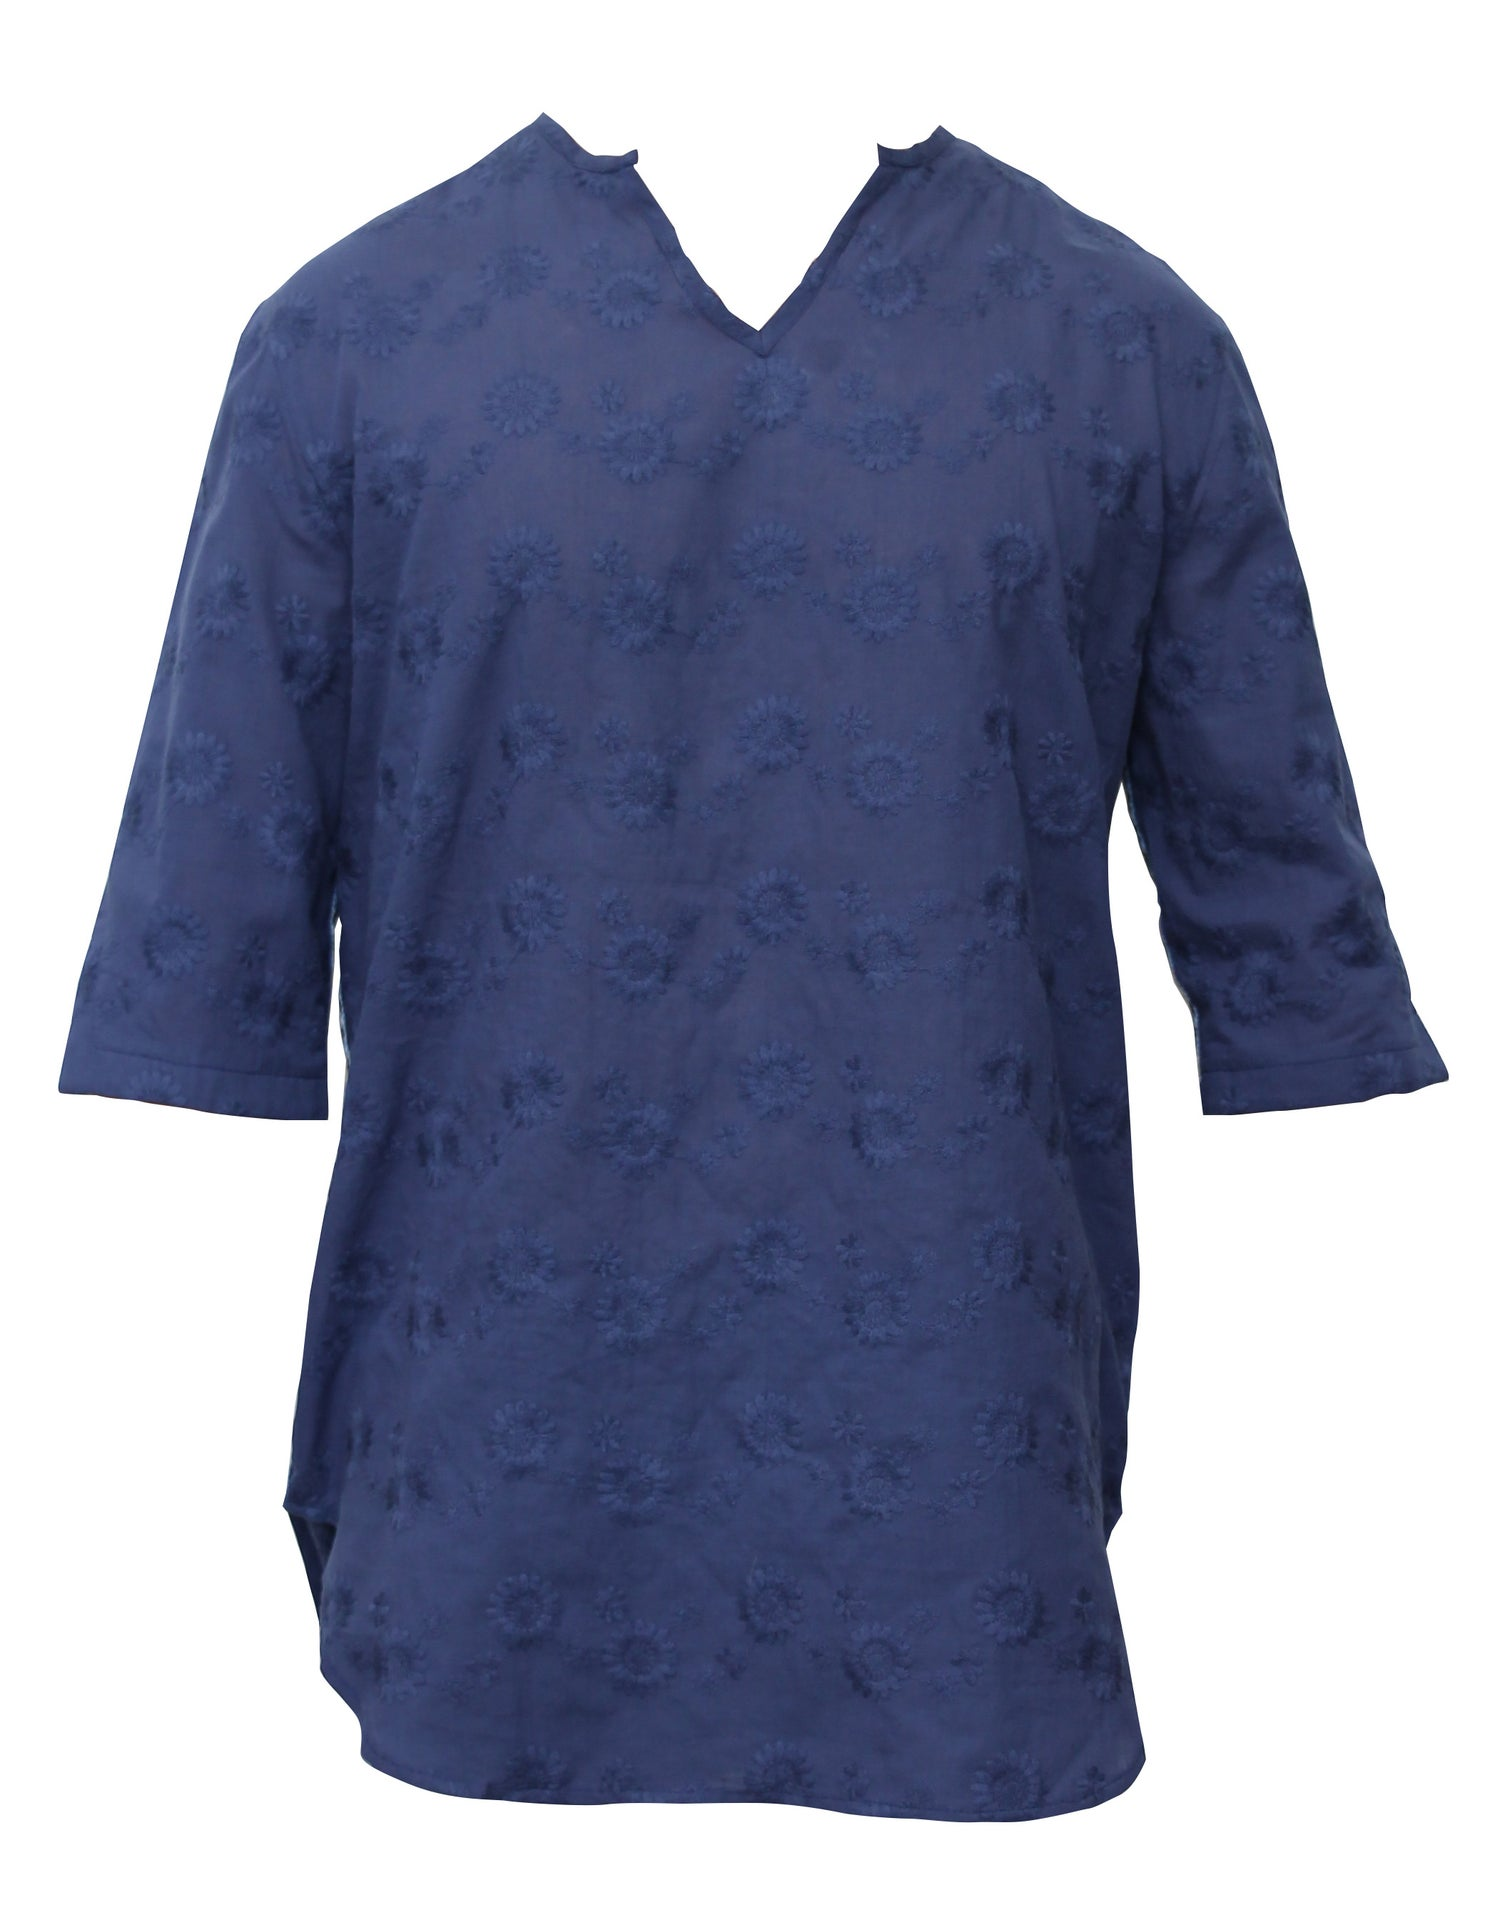 Image of Blue Embroidered Boho Shirt